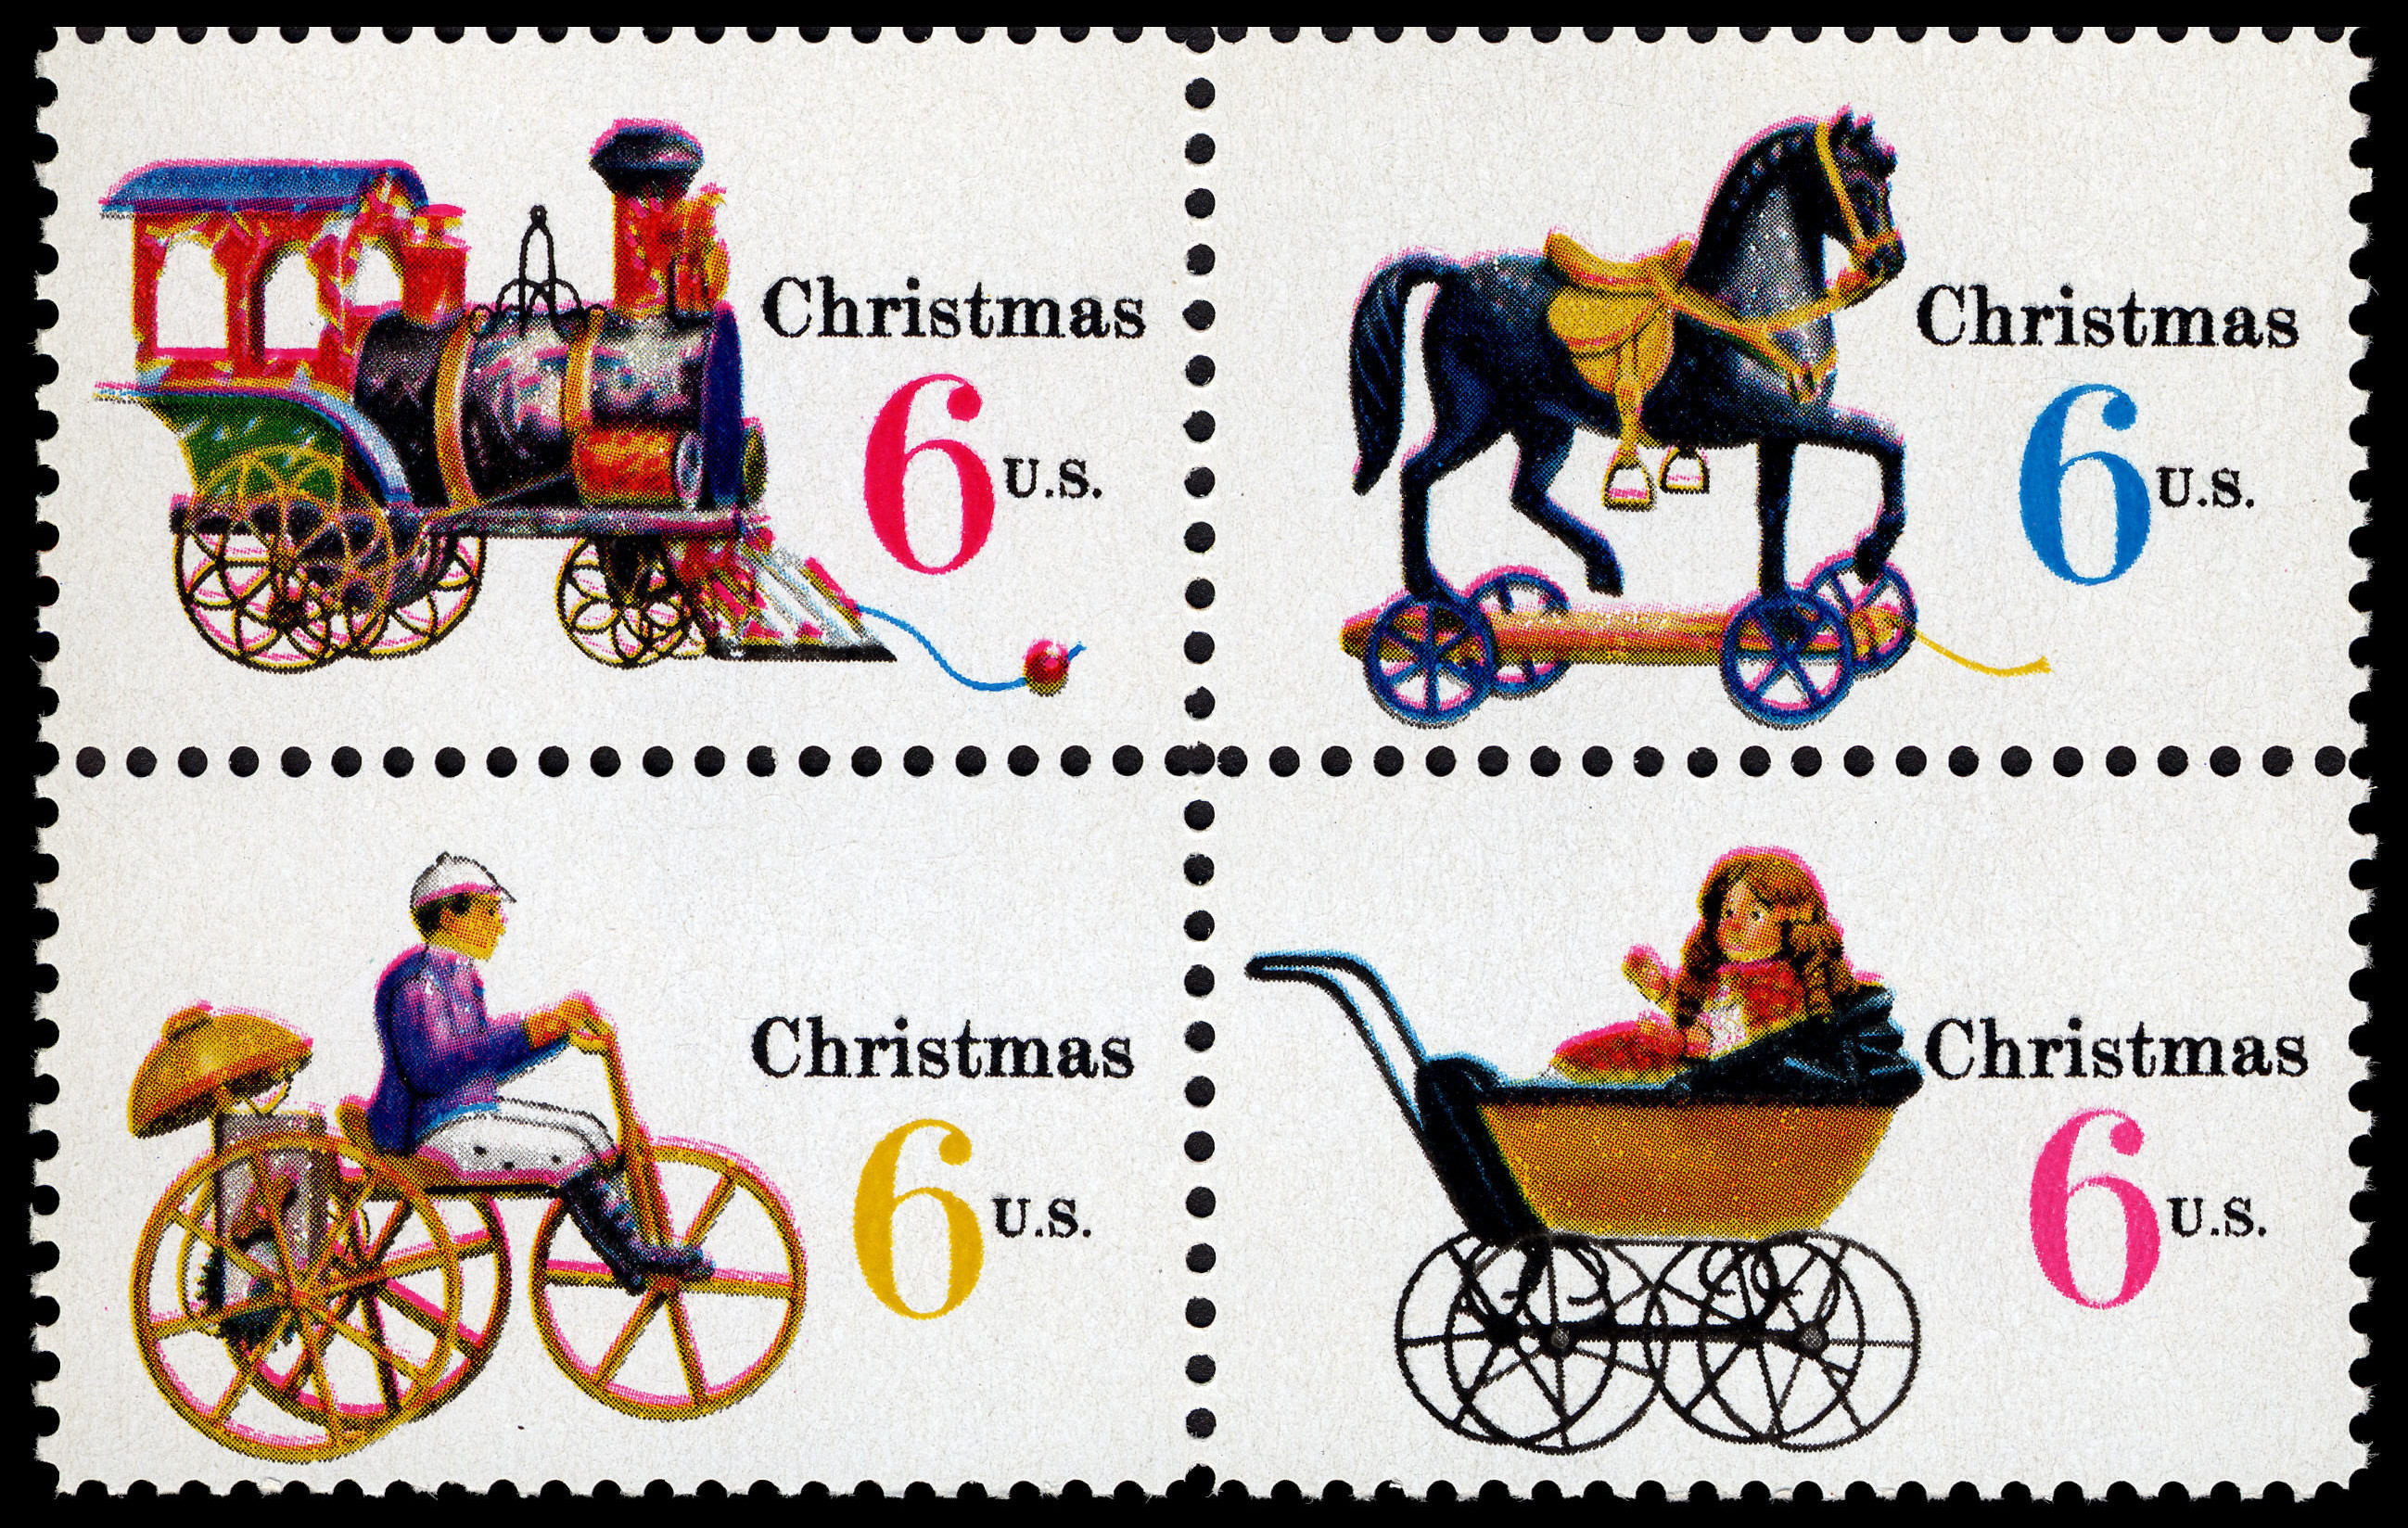 FileChristmas Toys 6c 1970 Issue US Stamp